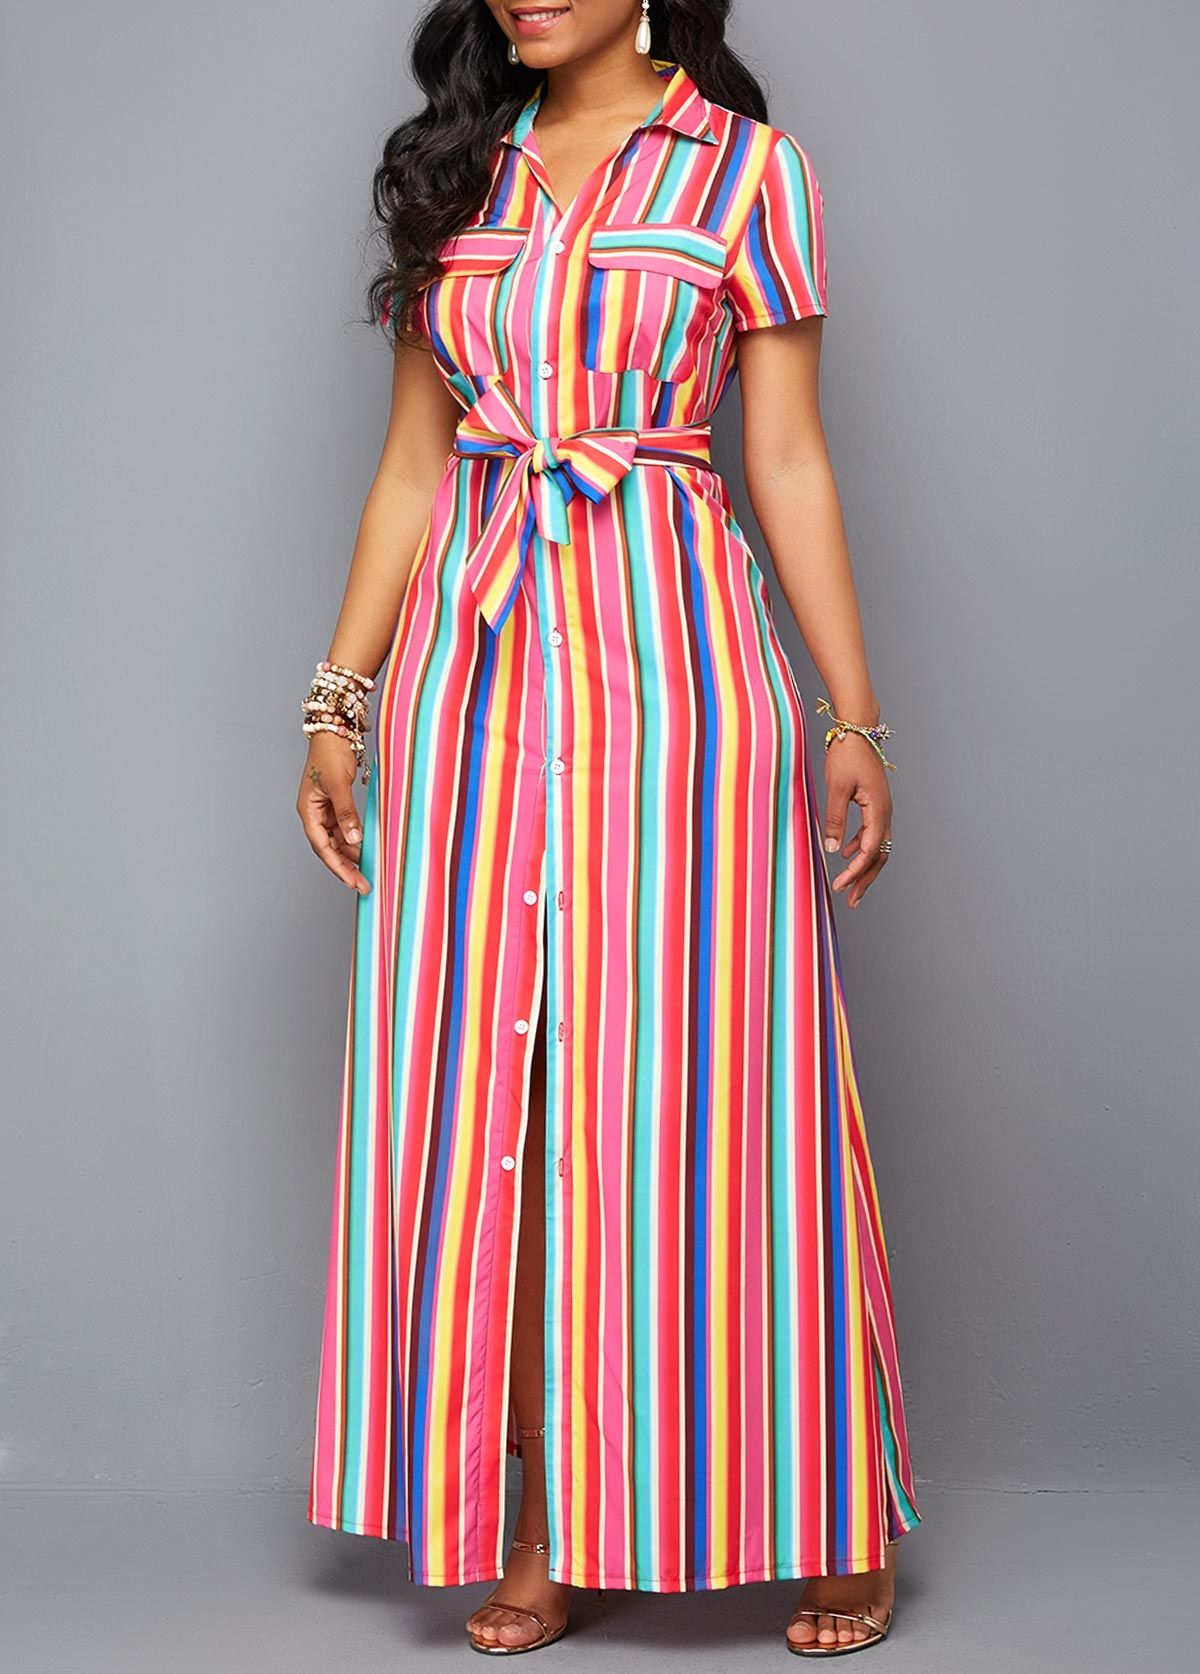 0c5c90c40e6 Turndown Collar Button Up Belted Maxi Dress